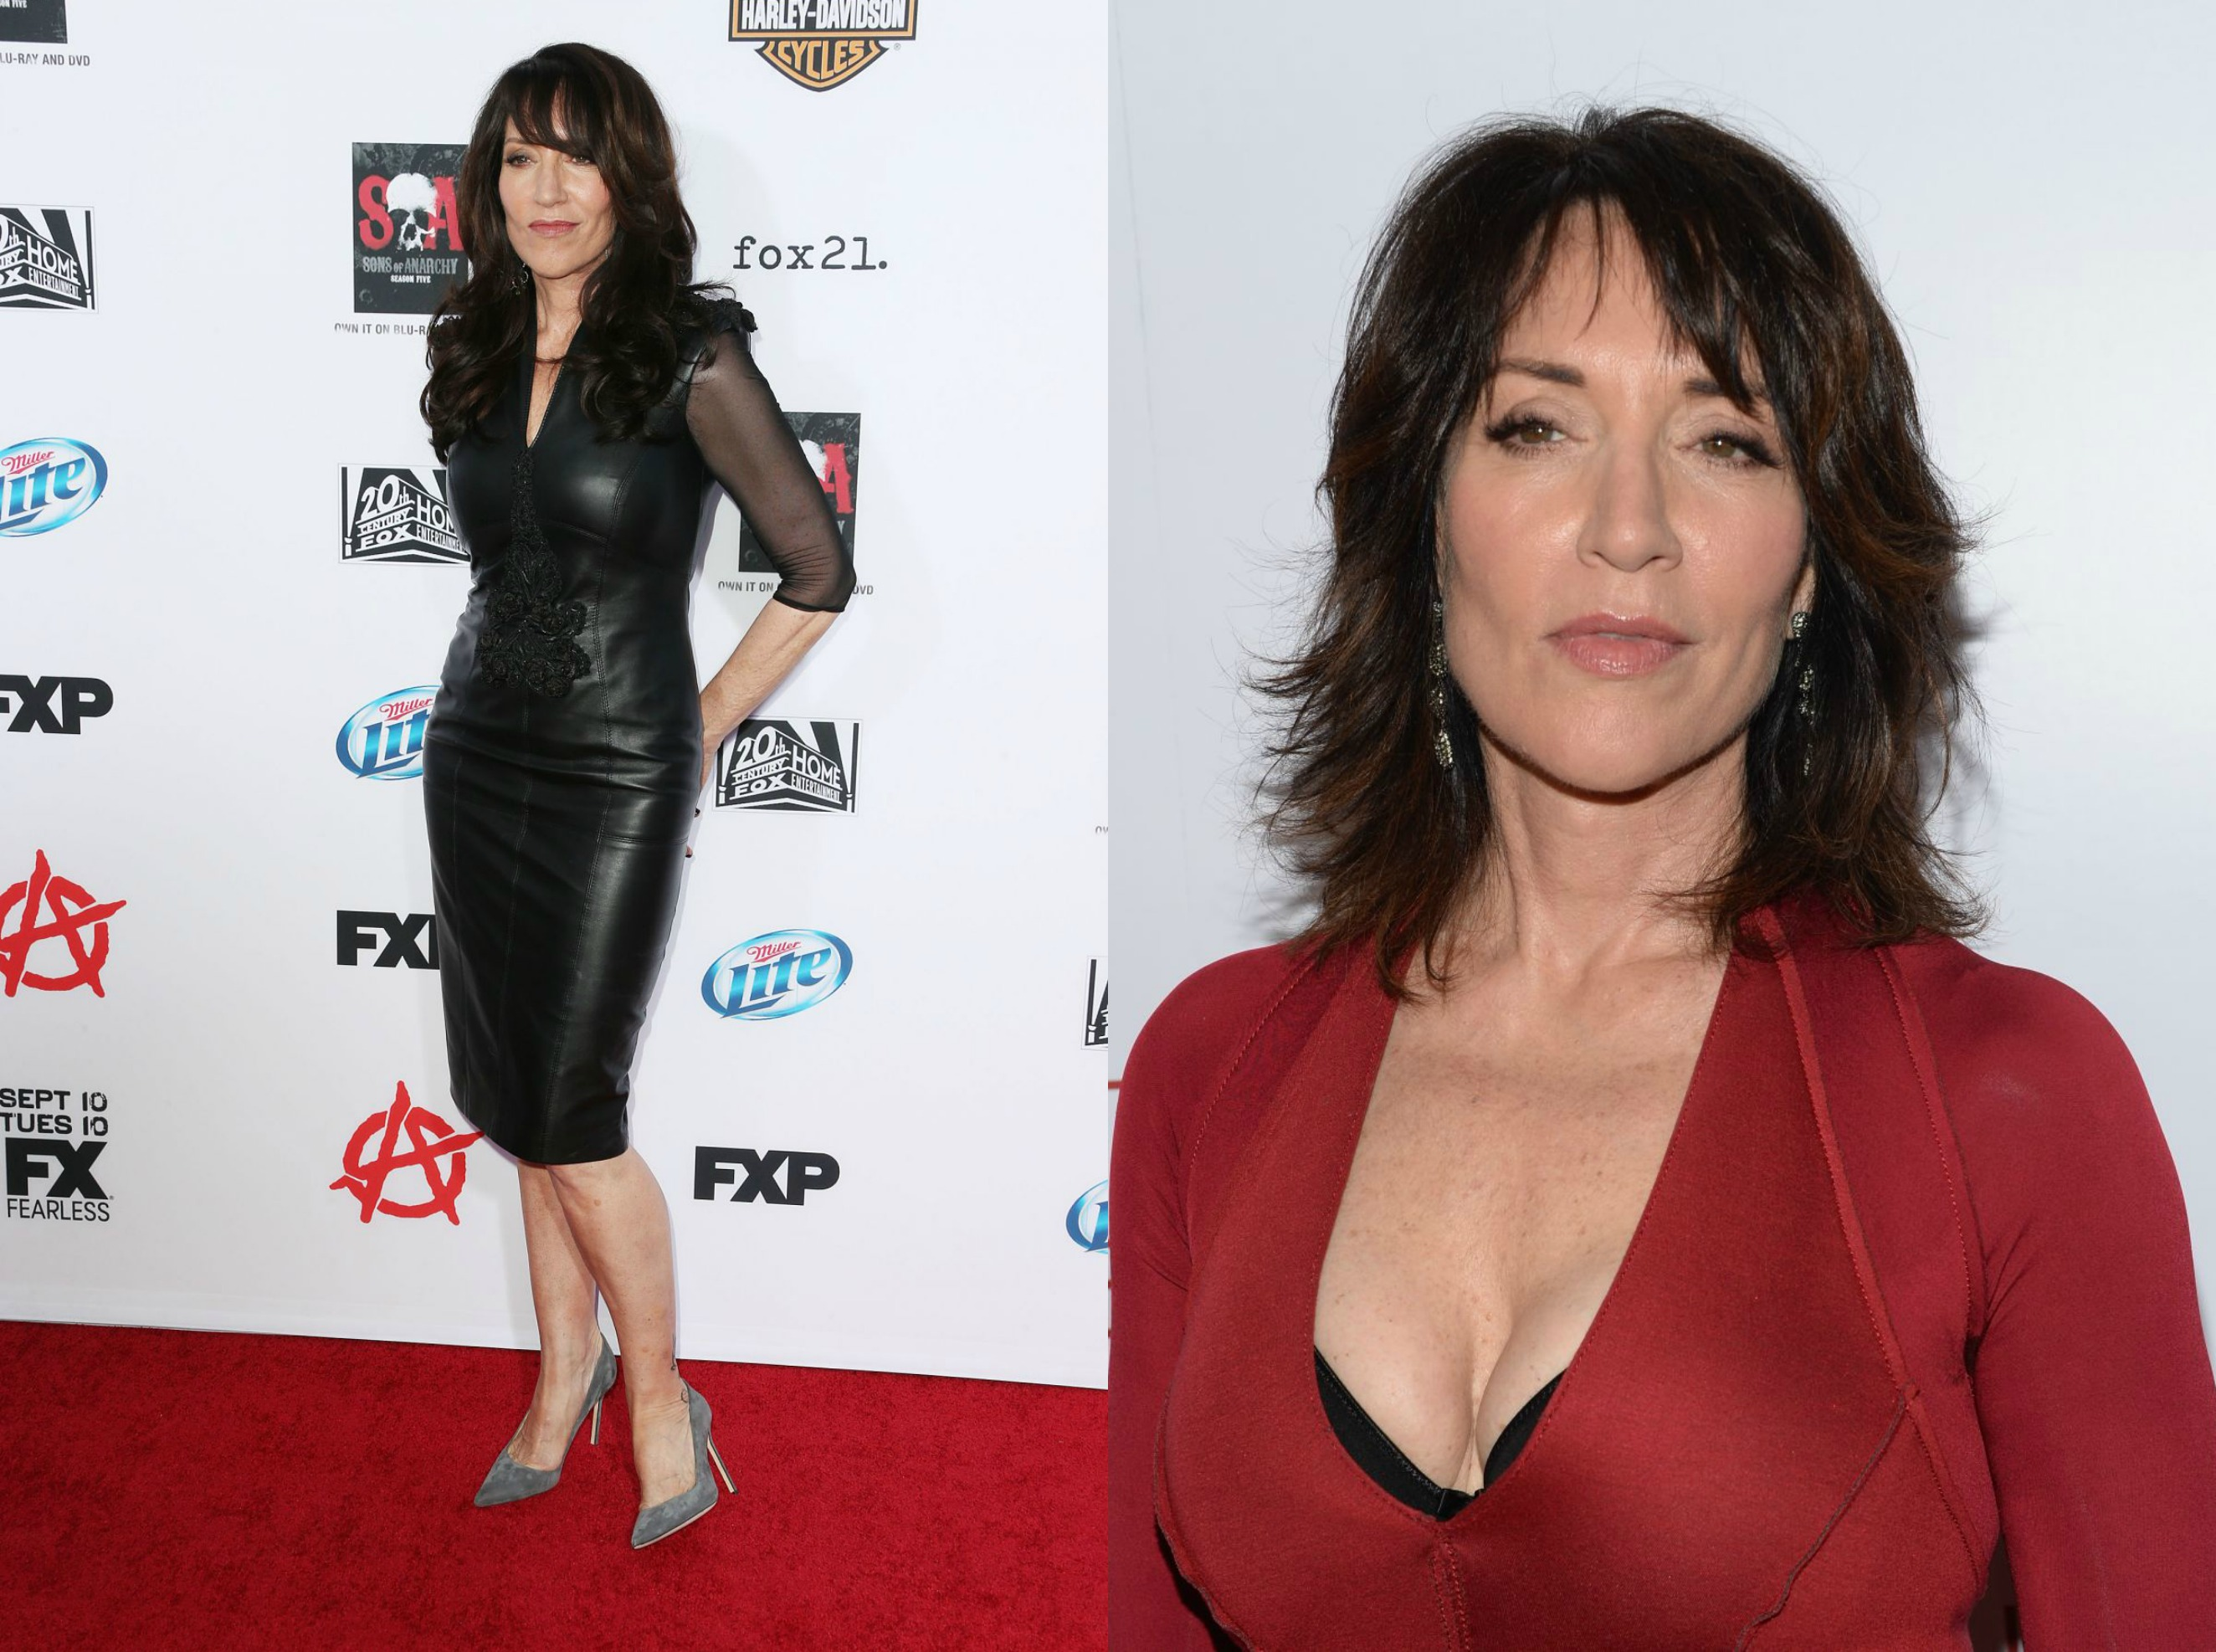 katey sagal plastic surgery photo - 1